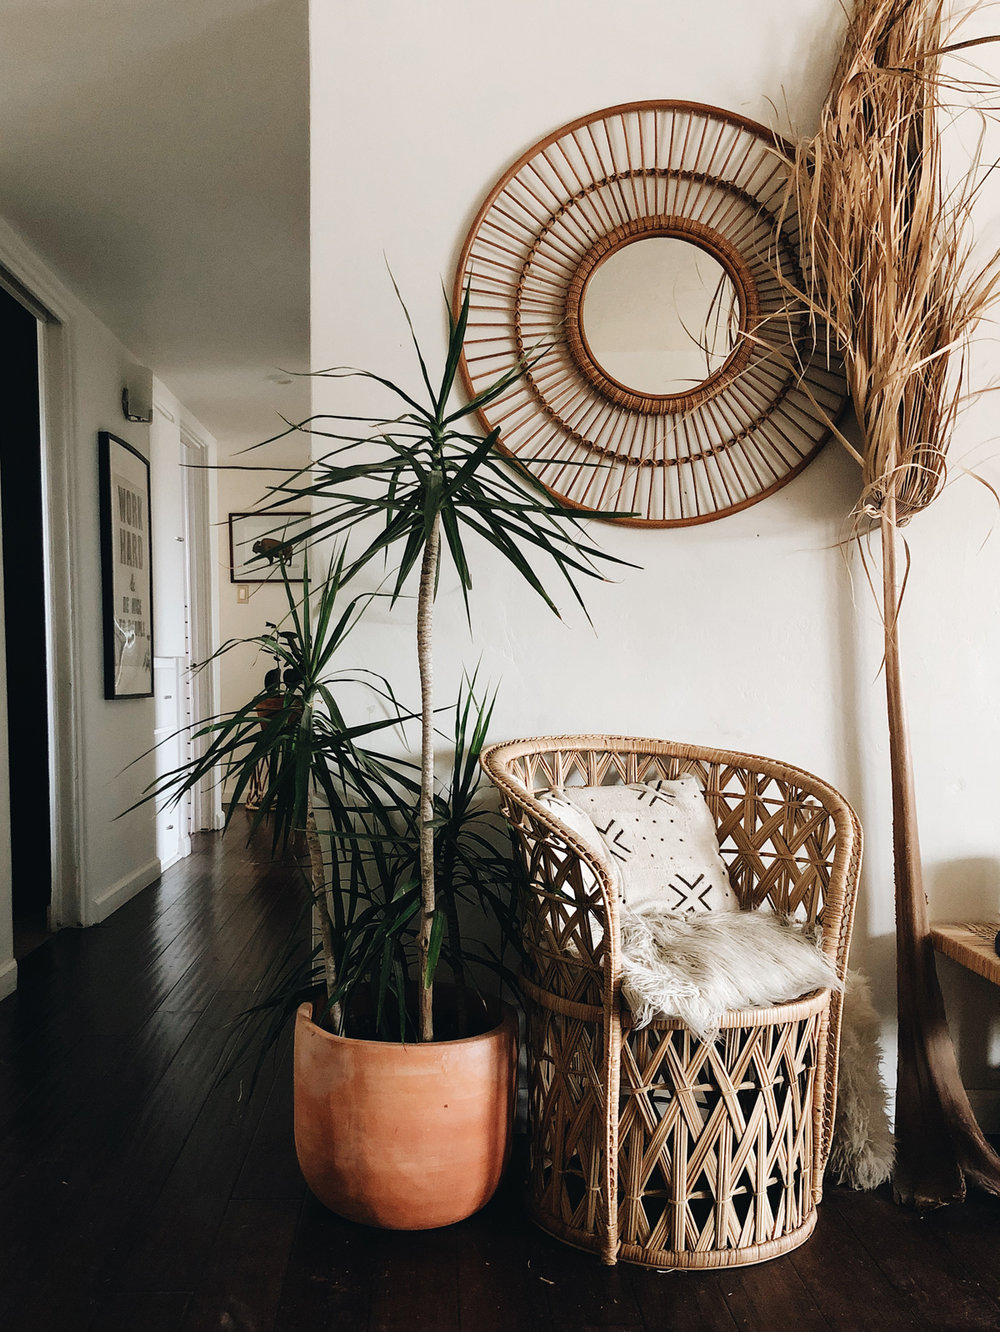 001-lifestyle--bohemian--home-design--albuquerque--plants.jpg